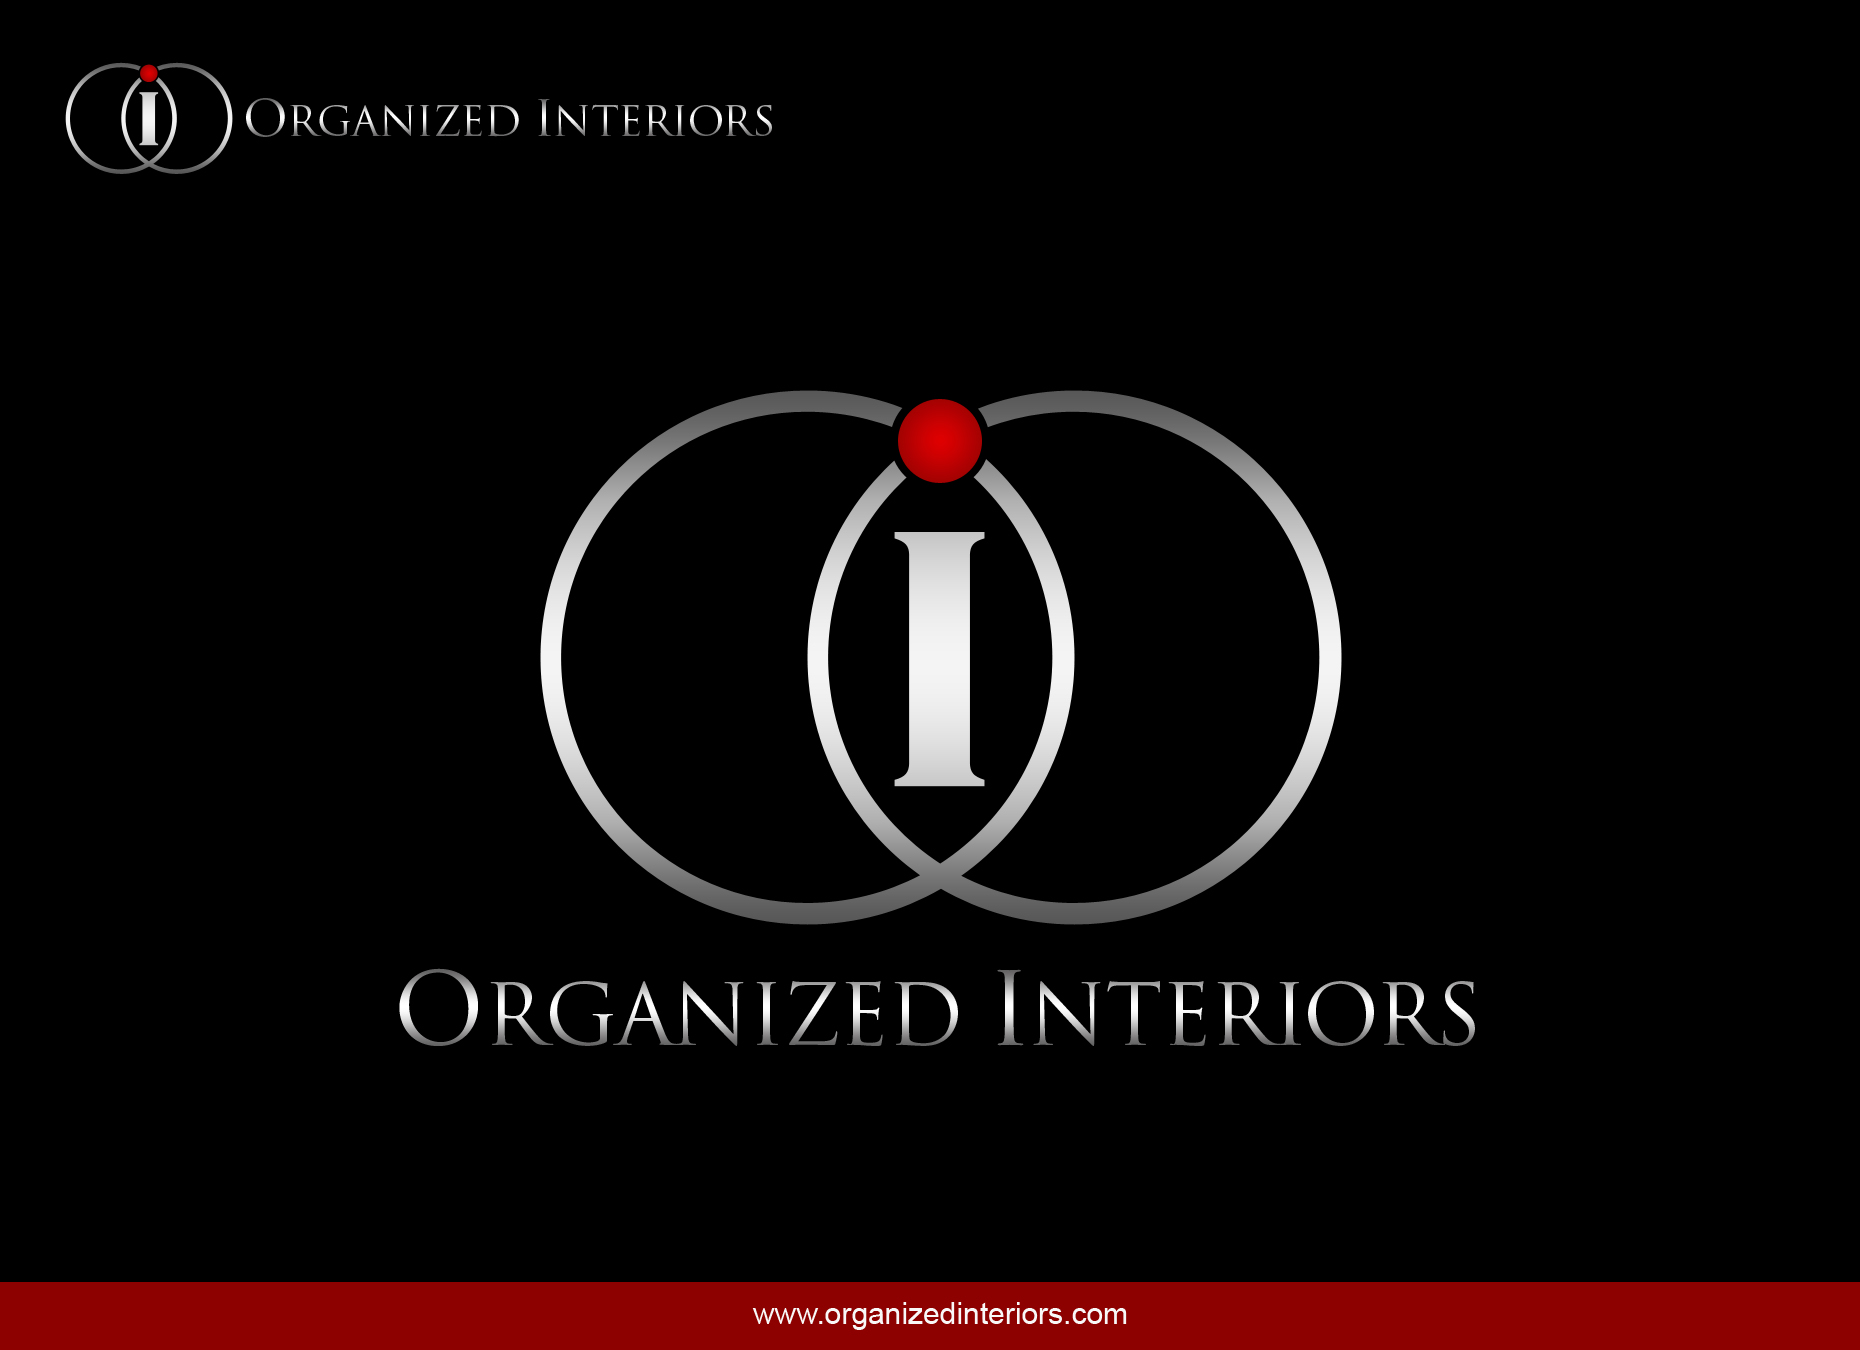 Logo Design by omARTist - Entry No. 131 in the Logo Design Contest Imaginative Logo Design for Organized Interiors.